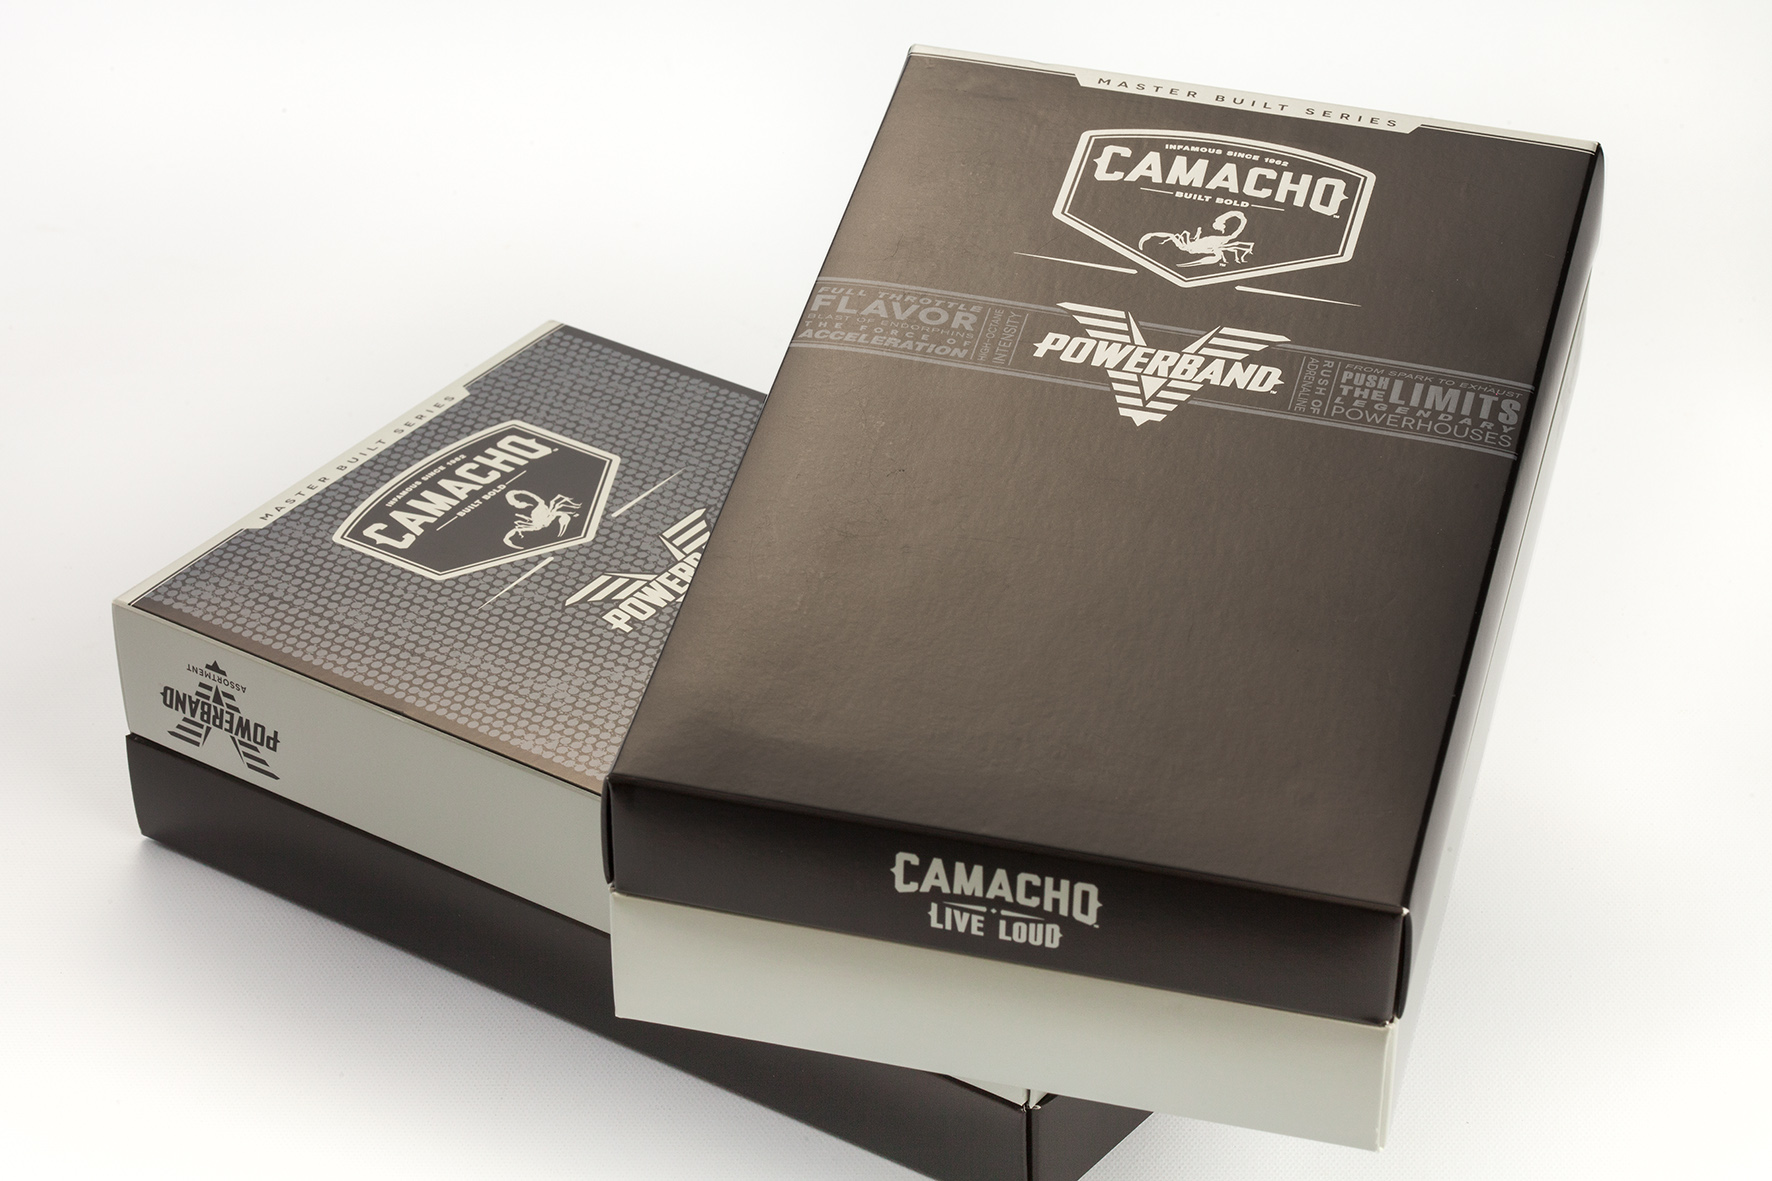 Camacho Cigar Packaging U.S. market